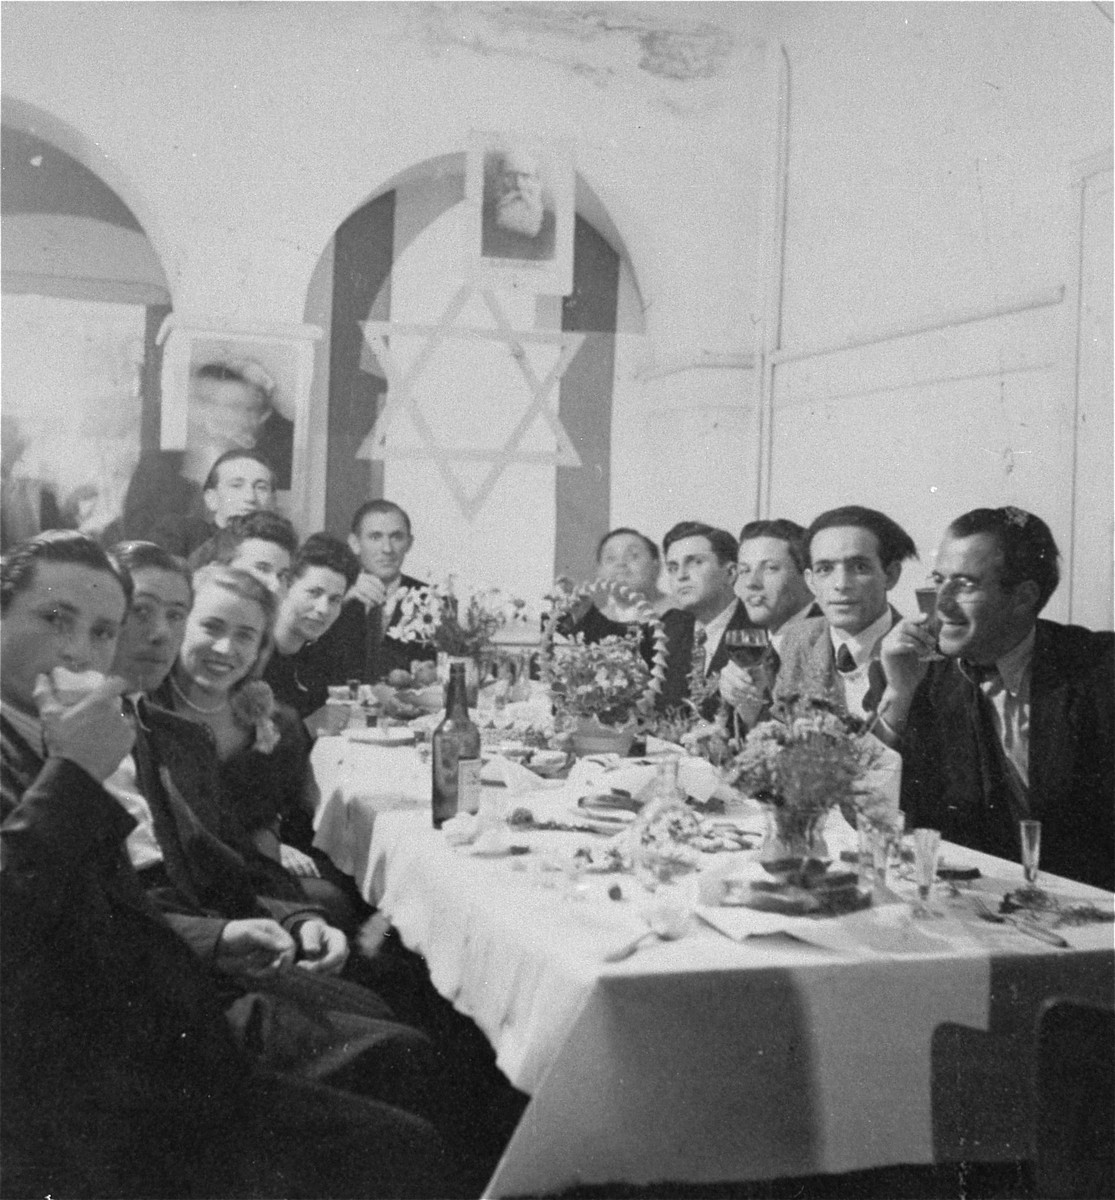 Jewish DPs attend a festive dinner at the Mittenwald displaced persons camp.